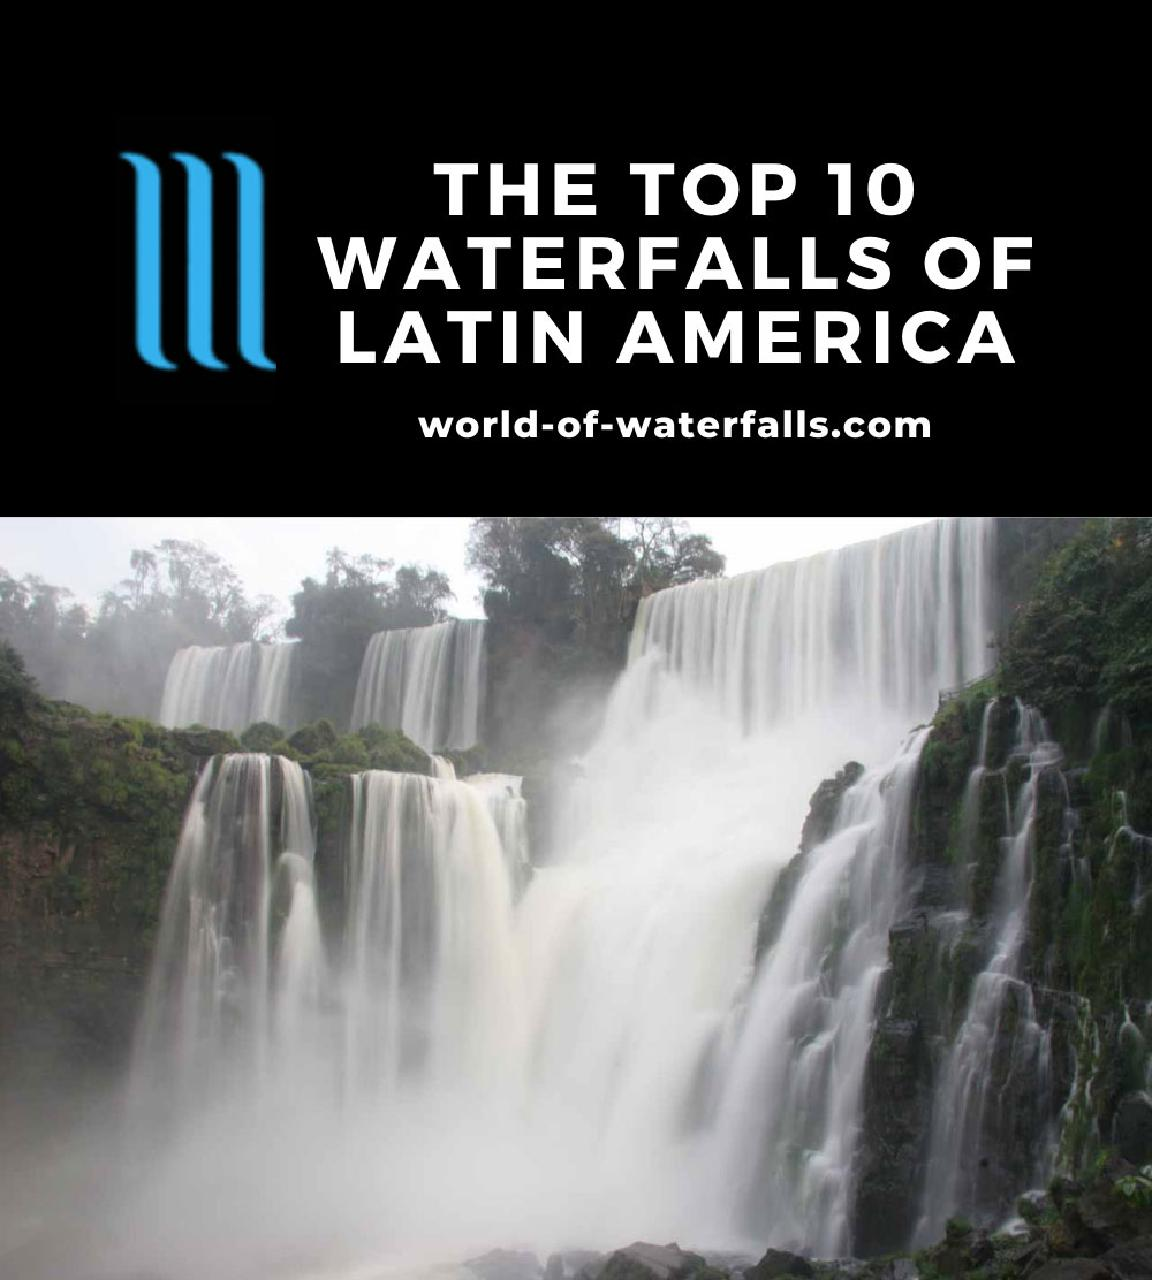 The Top 10 Waterfalls of Latin America